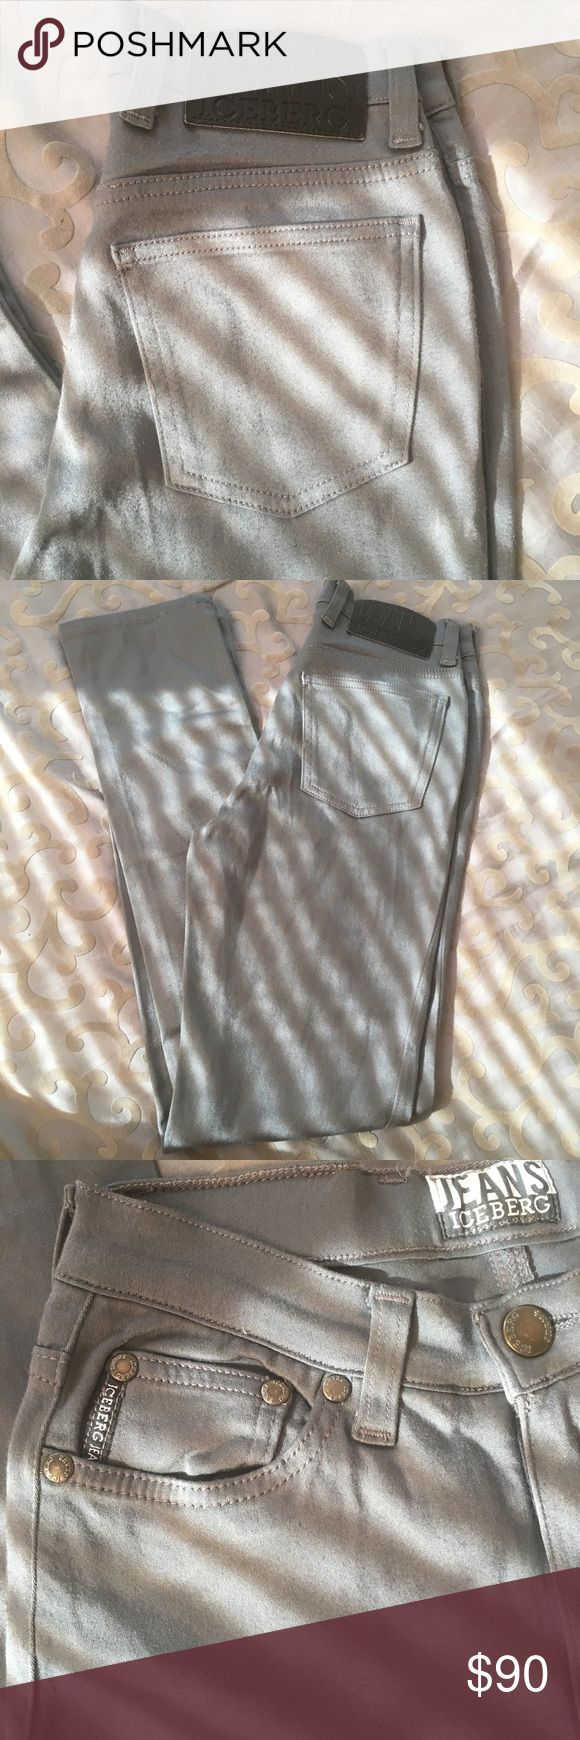 Iceberg Jeans Iceberg Jeans 80% viscosa 17% poliammide 03% Elastan size 26 made in Italy #iceberg #jeans #designer they are chic and stylish . Great Condition want to get rid of them asap Iceberg Jeans Straight Leg